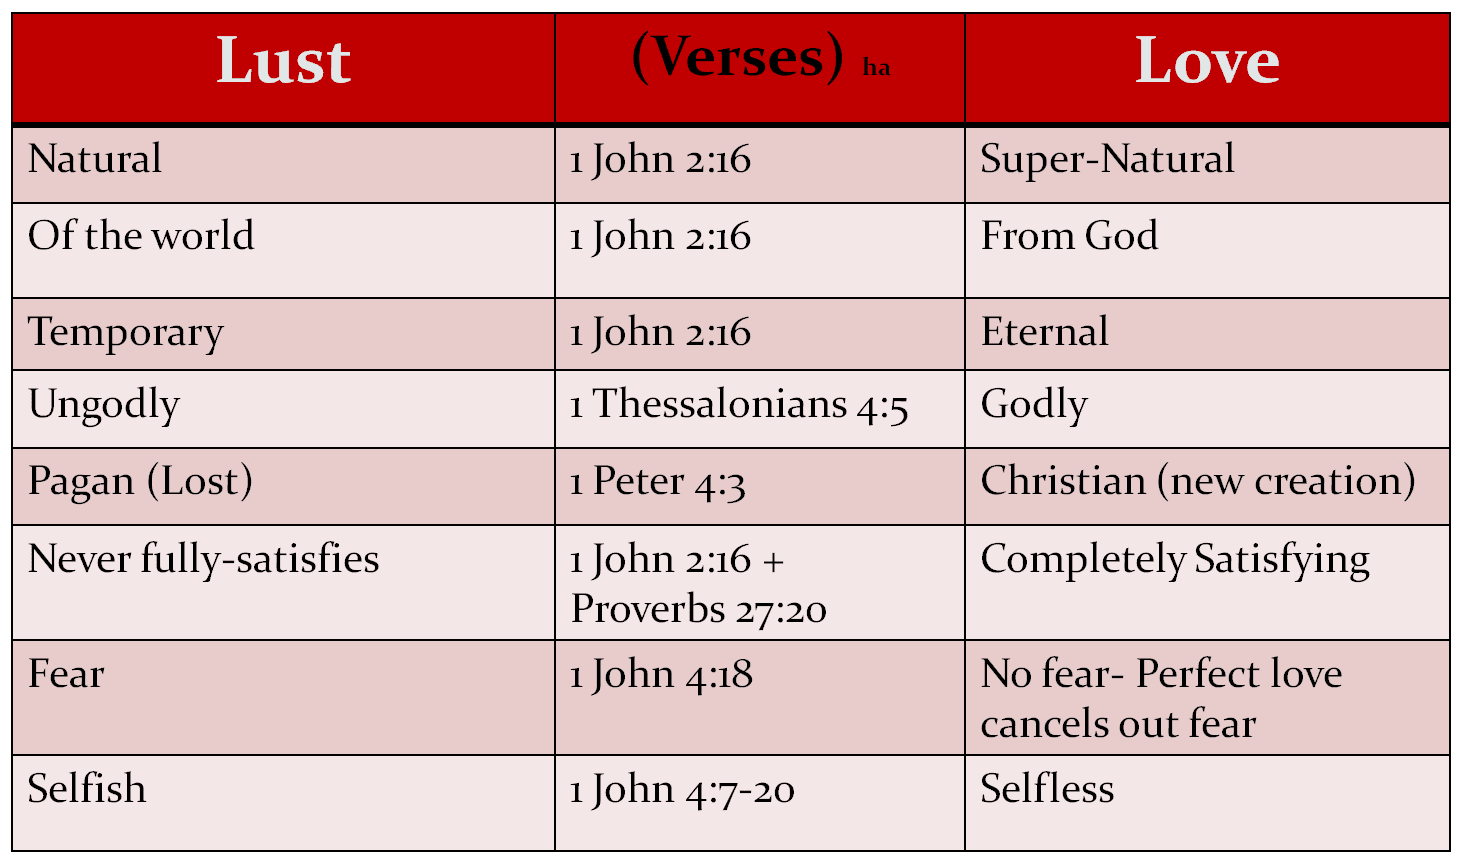 What is lust vs love